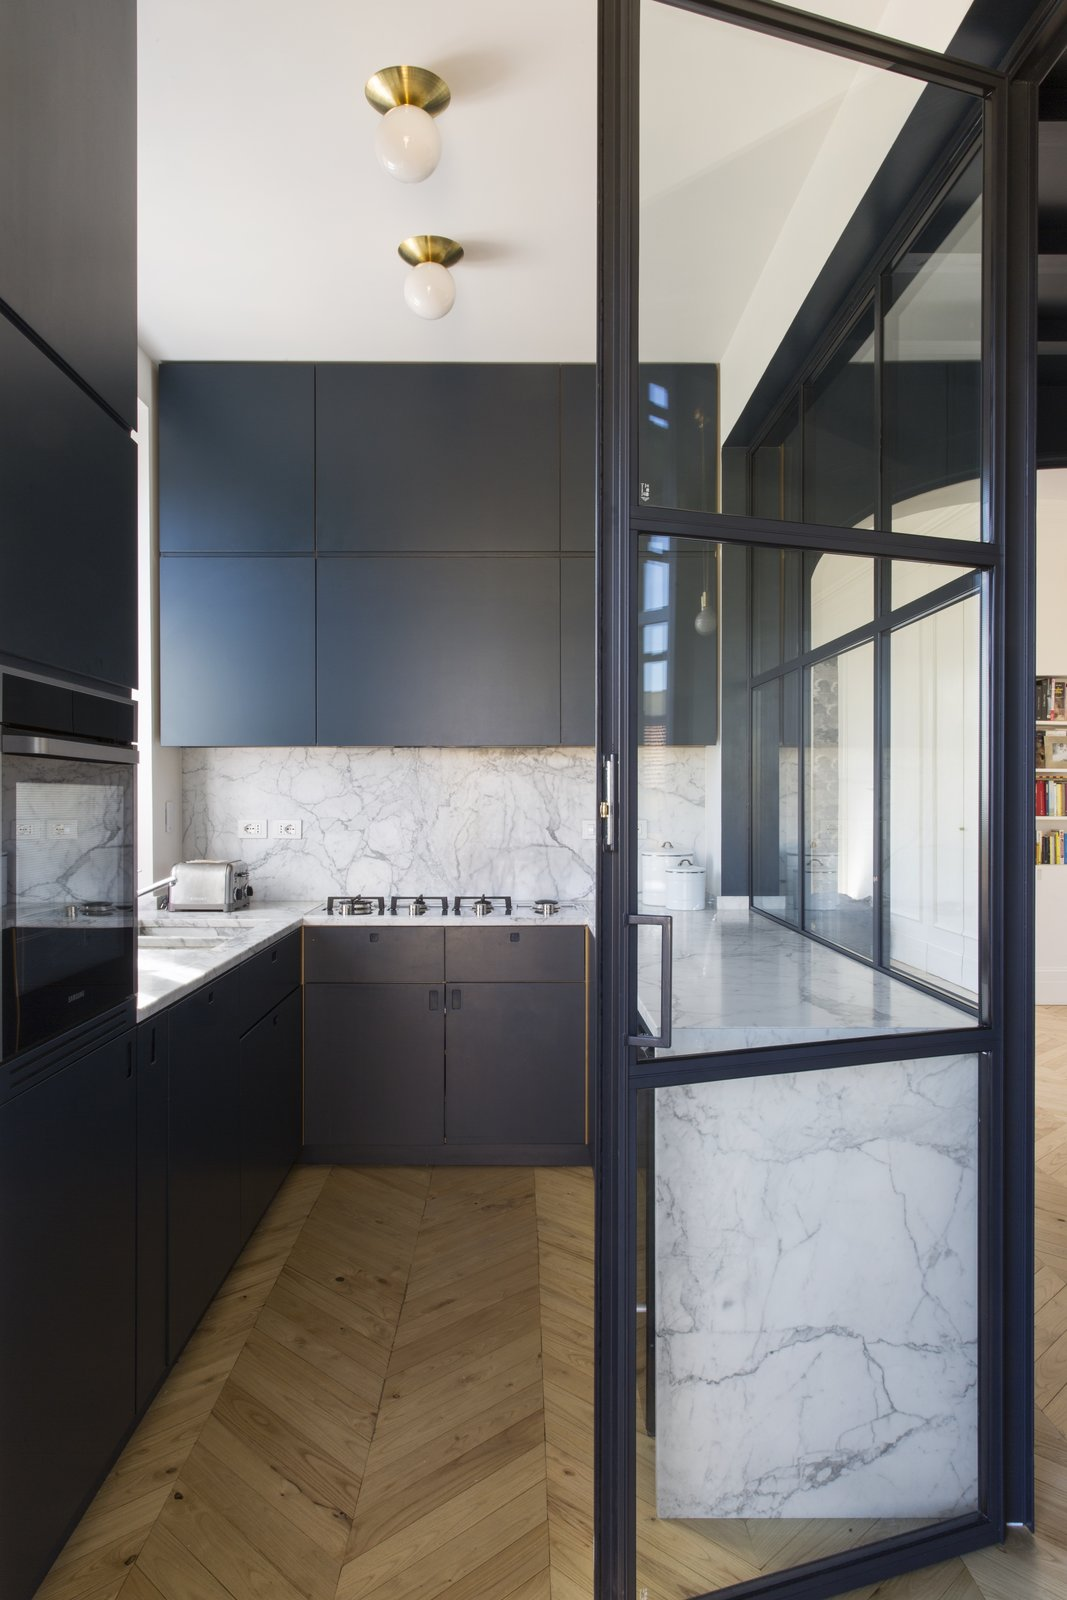 Kitchen, Cooktops, Marble, Marble, Light Hardwood, Wall Oven, Ceiling, Undermount, and Colorful Crittall-style windows encase the sleek and modern kitchen. In this room, deep veined marble has been used for the counters and backsplash.     Best Kitchen Marble Undermount Photos from A Historic Apartment in Rome Is Treated to a Dramatic New Look